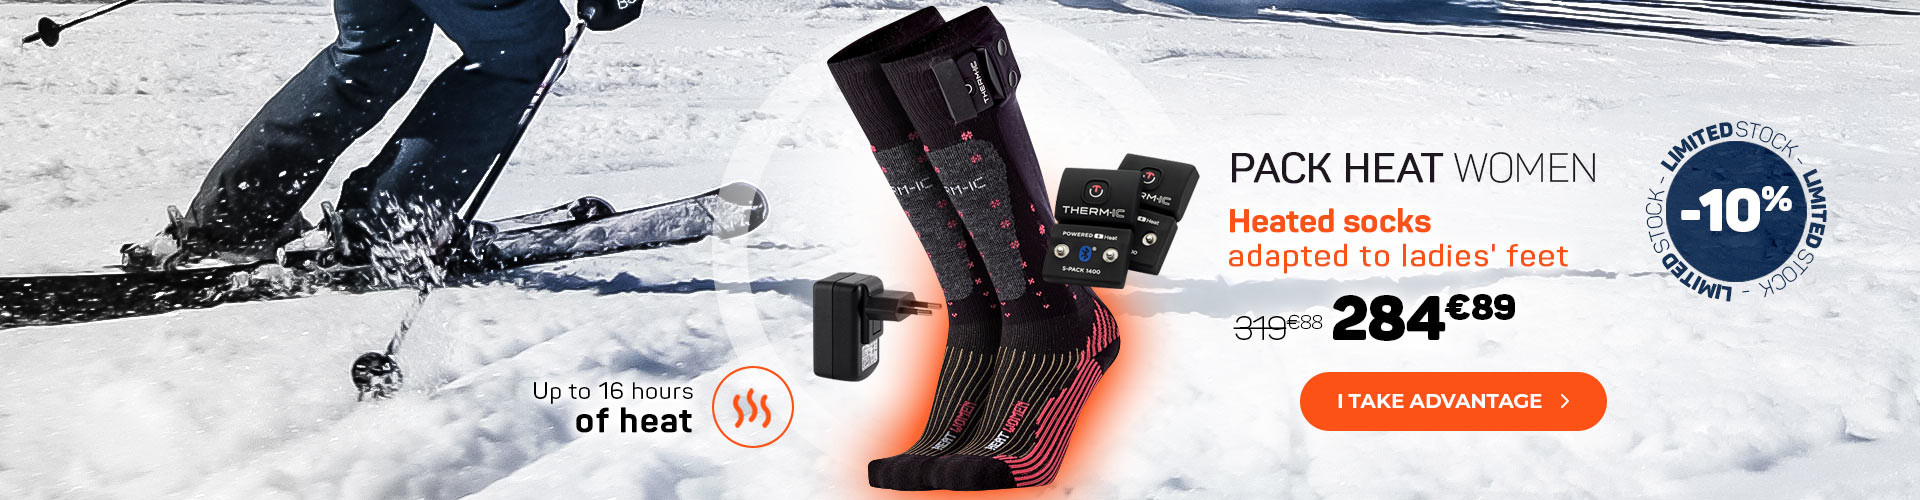 Say STOP to frozen feet thanks to our heated socks!